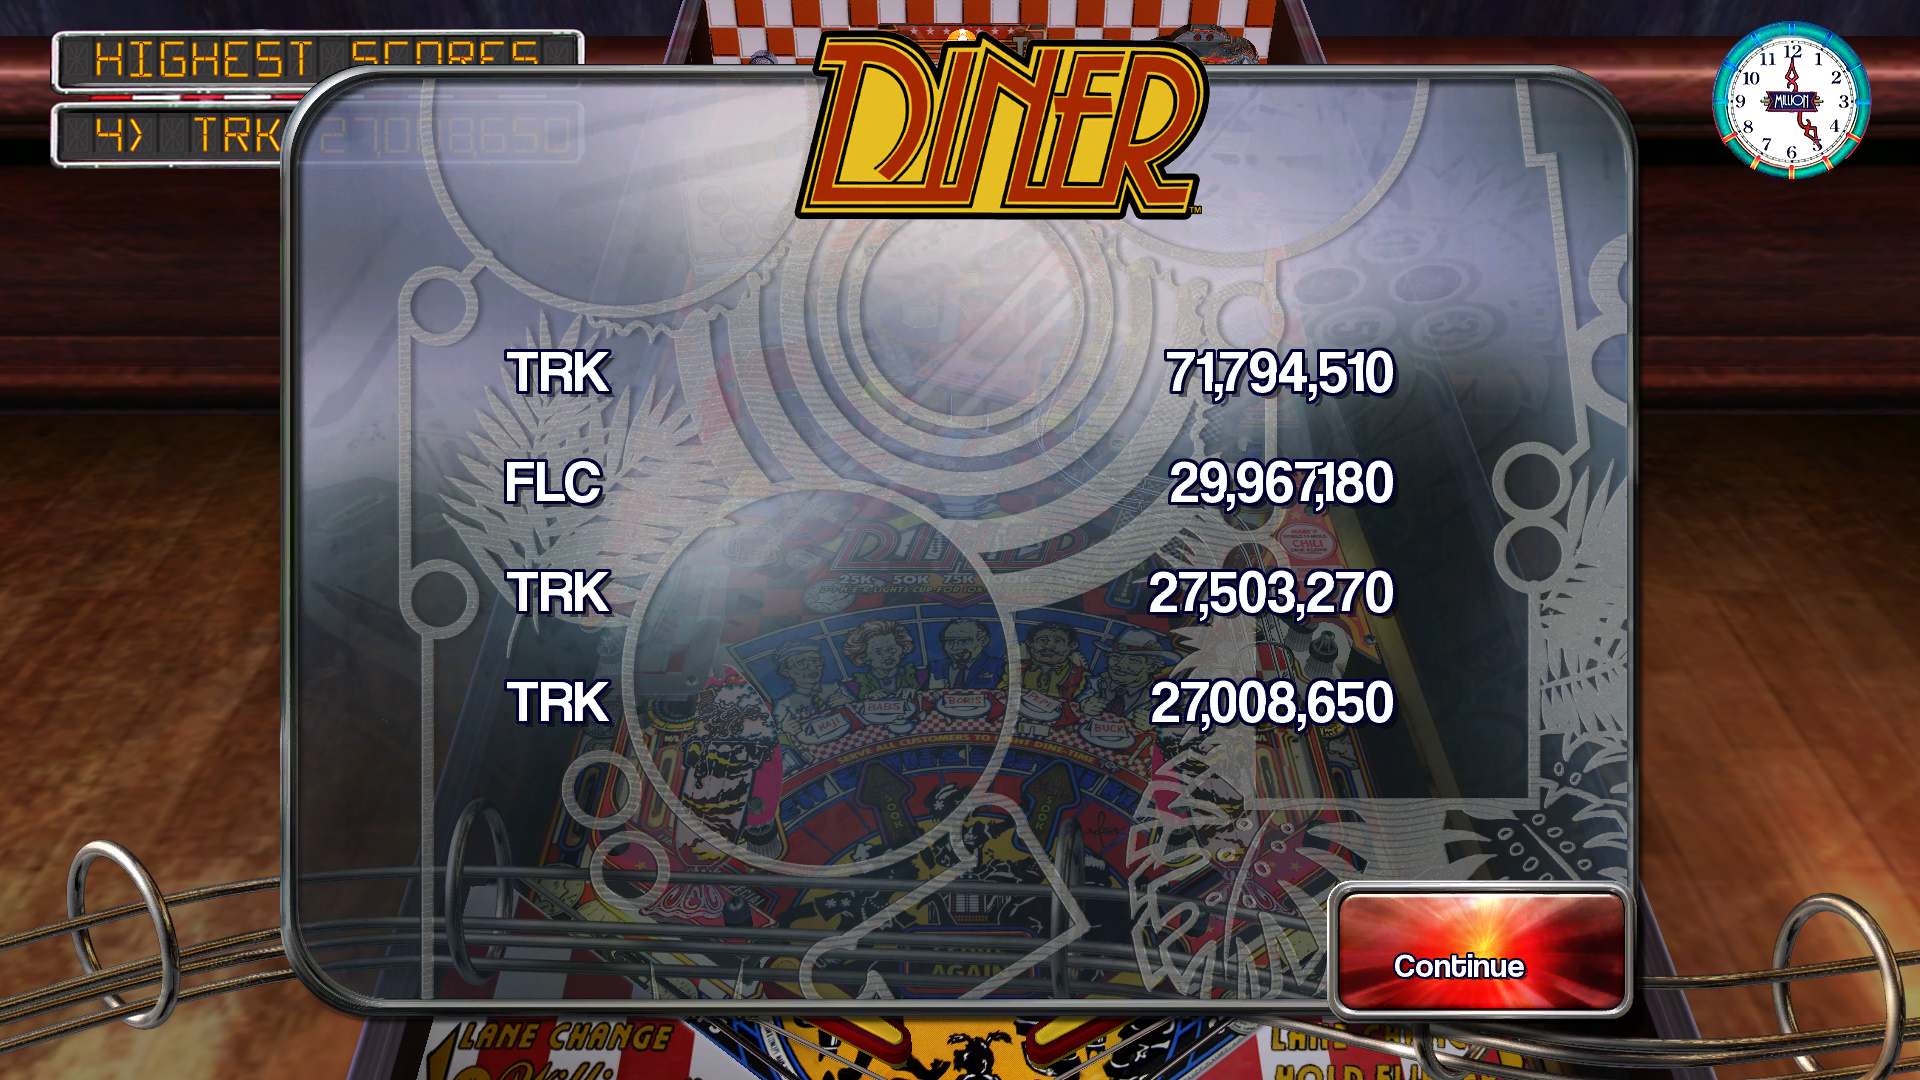 TheTrickster: Pinball Arcade: Diner (PC) 71,794,510 points on 2015-10-12 05:17:28